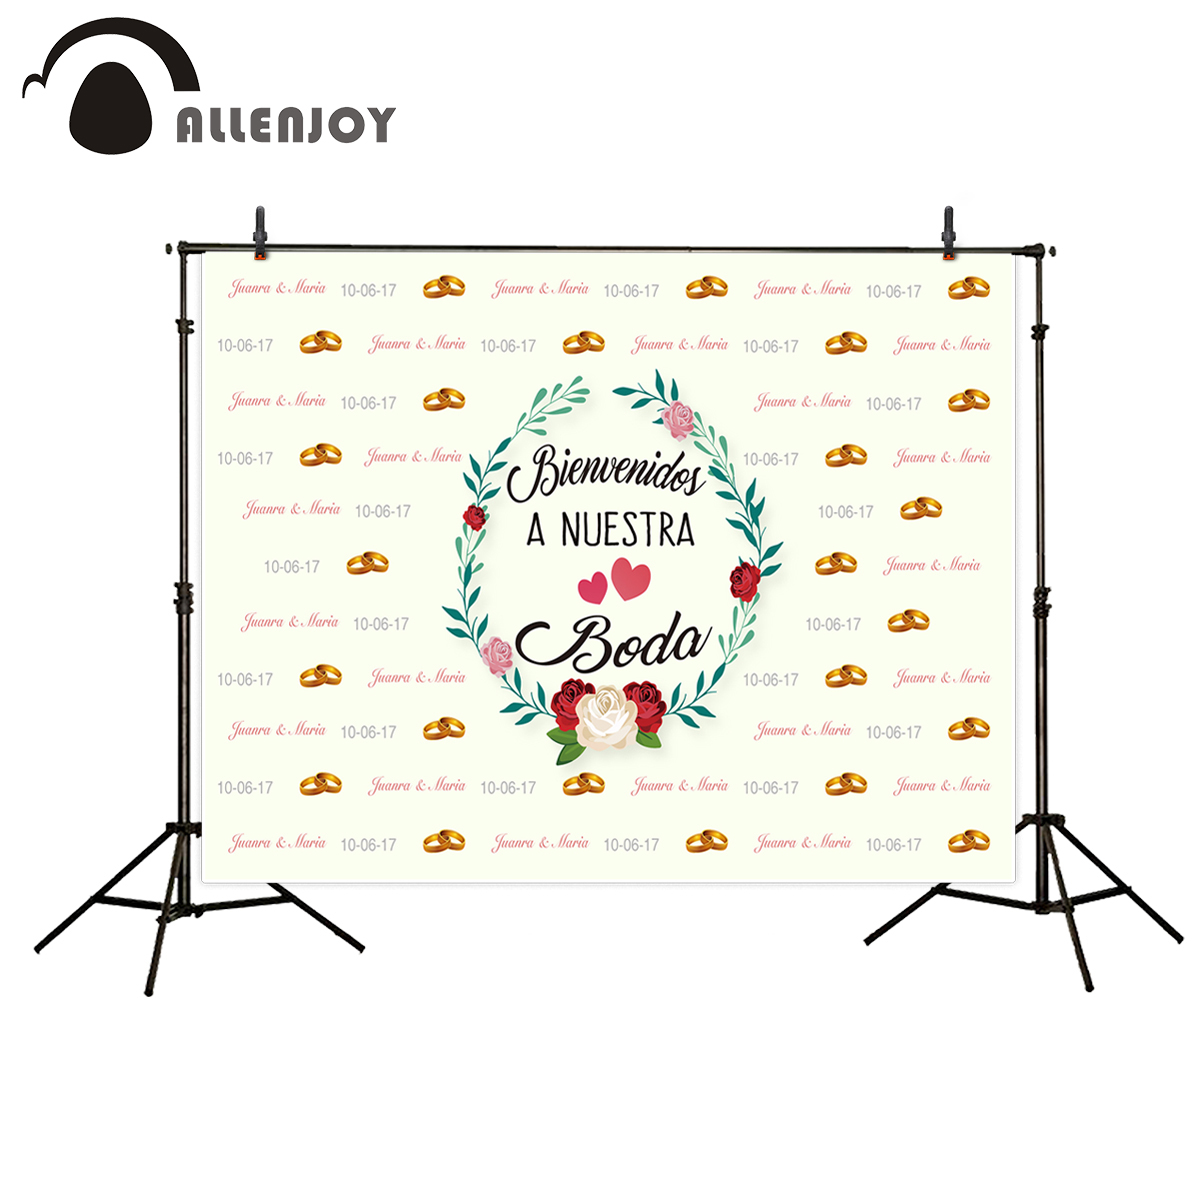 Allenjoy font b camera b font photography Wedding background rings flowers custom name and date backgrounds